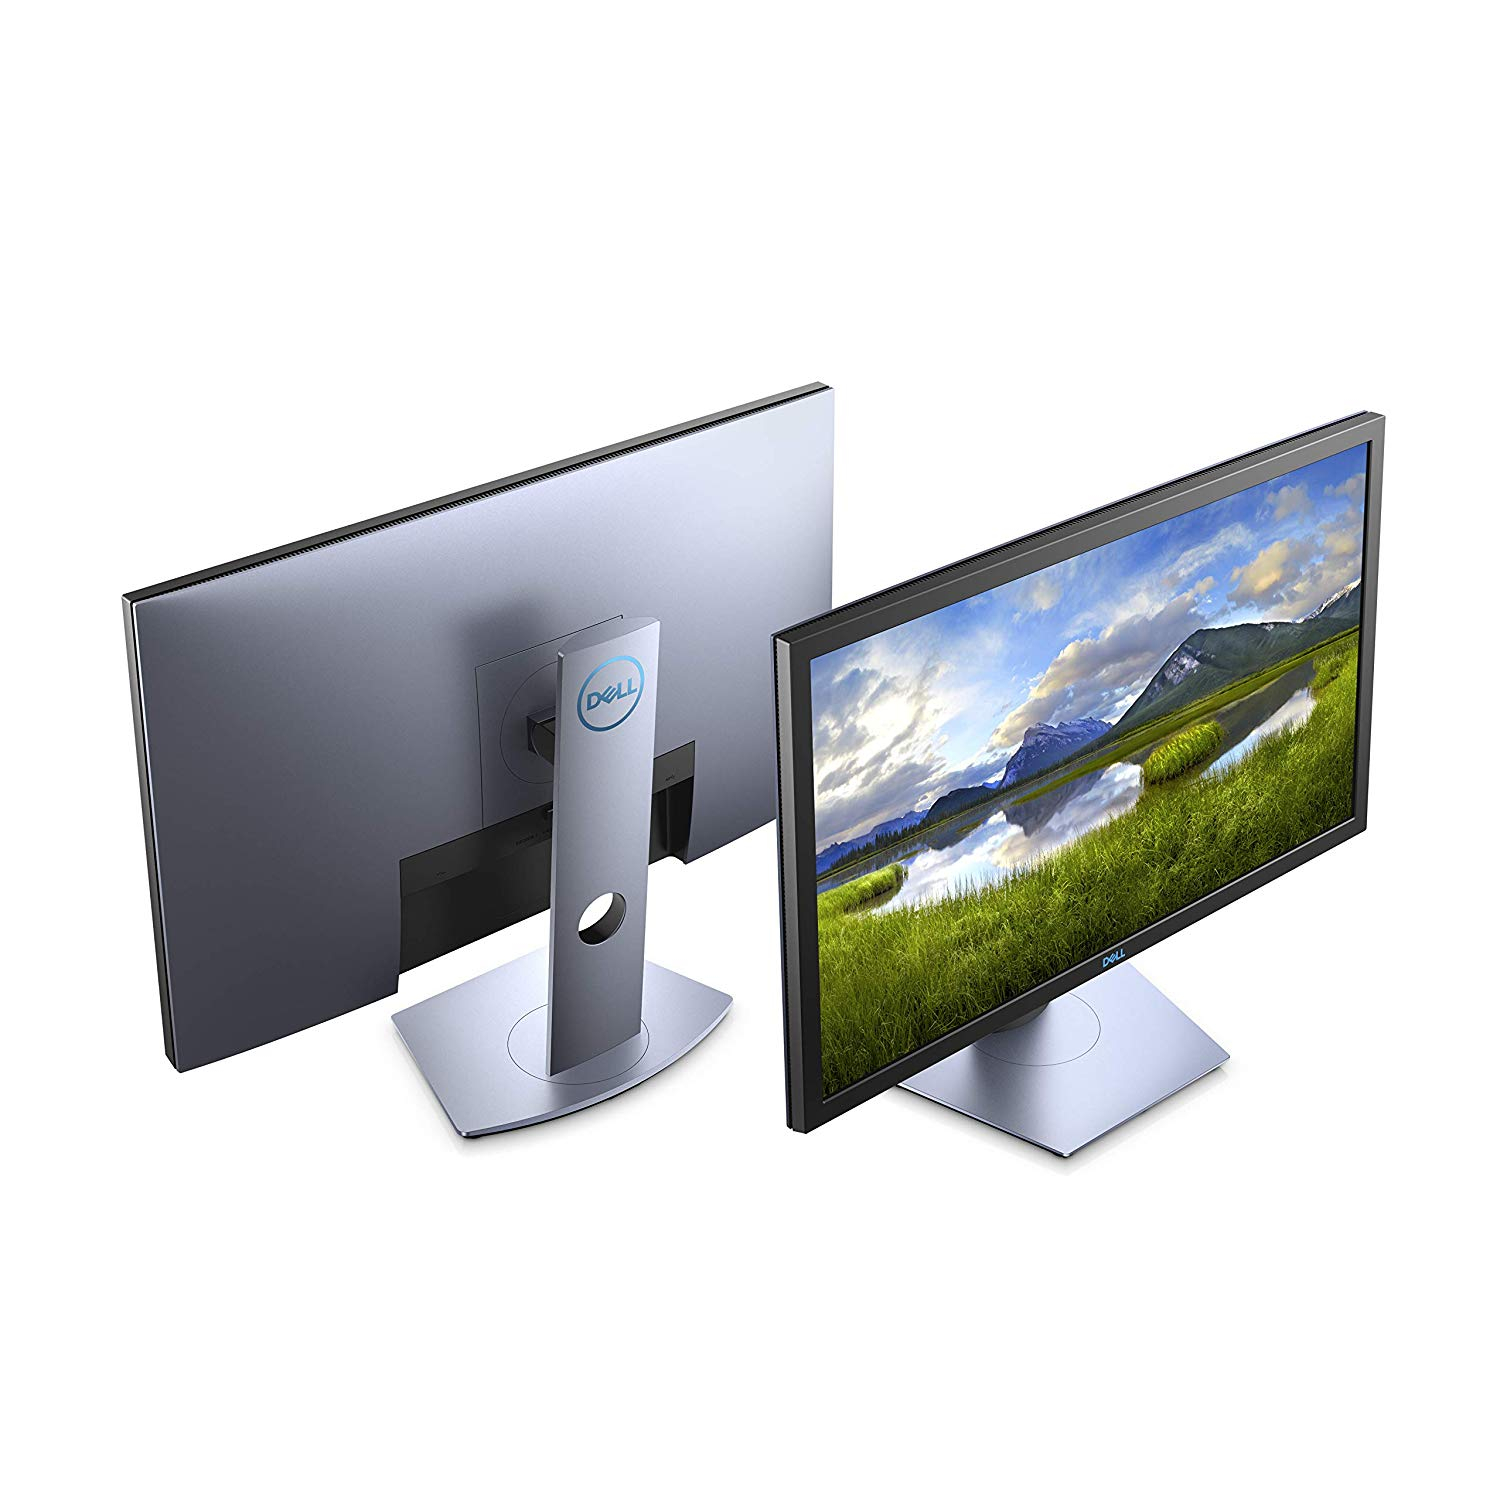 24″ Dell S2419HGF 1080p Gaming Monitor with 1ms Response